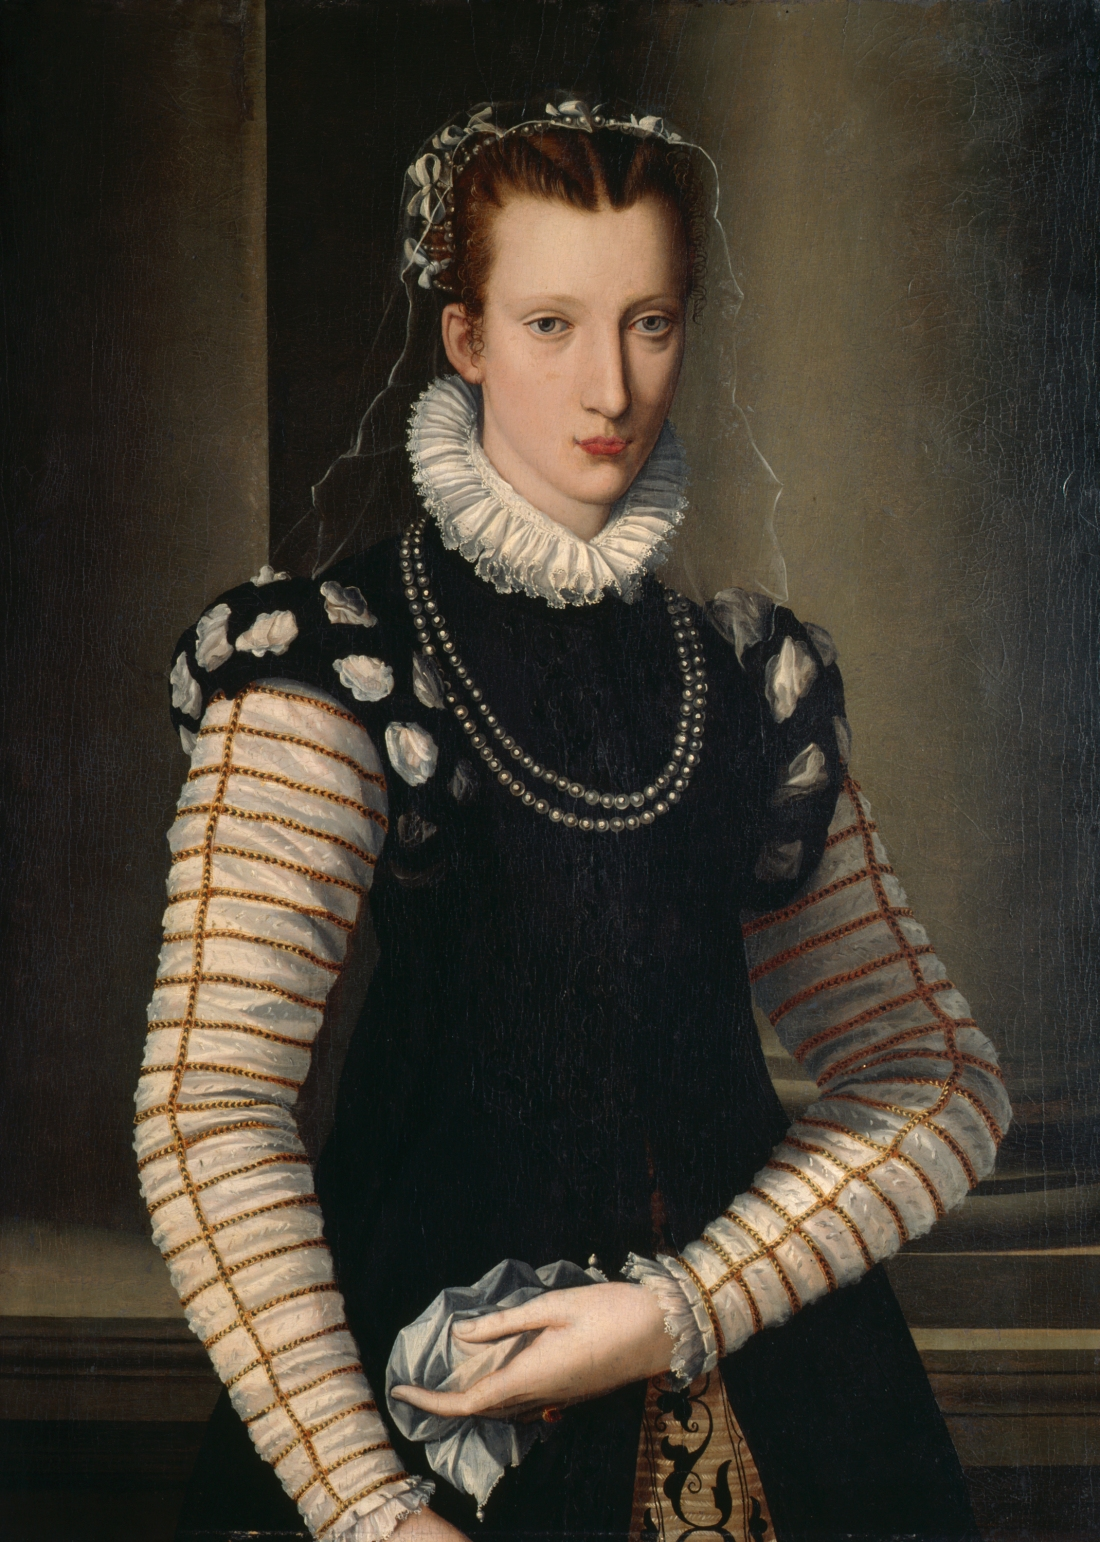 Portrait of a Lady in Black and White. ca. 1590-99.